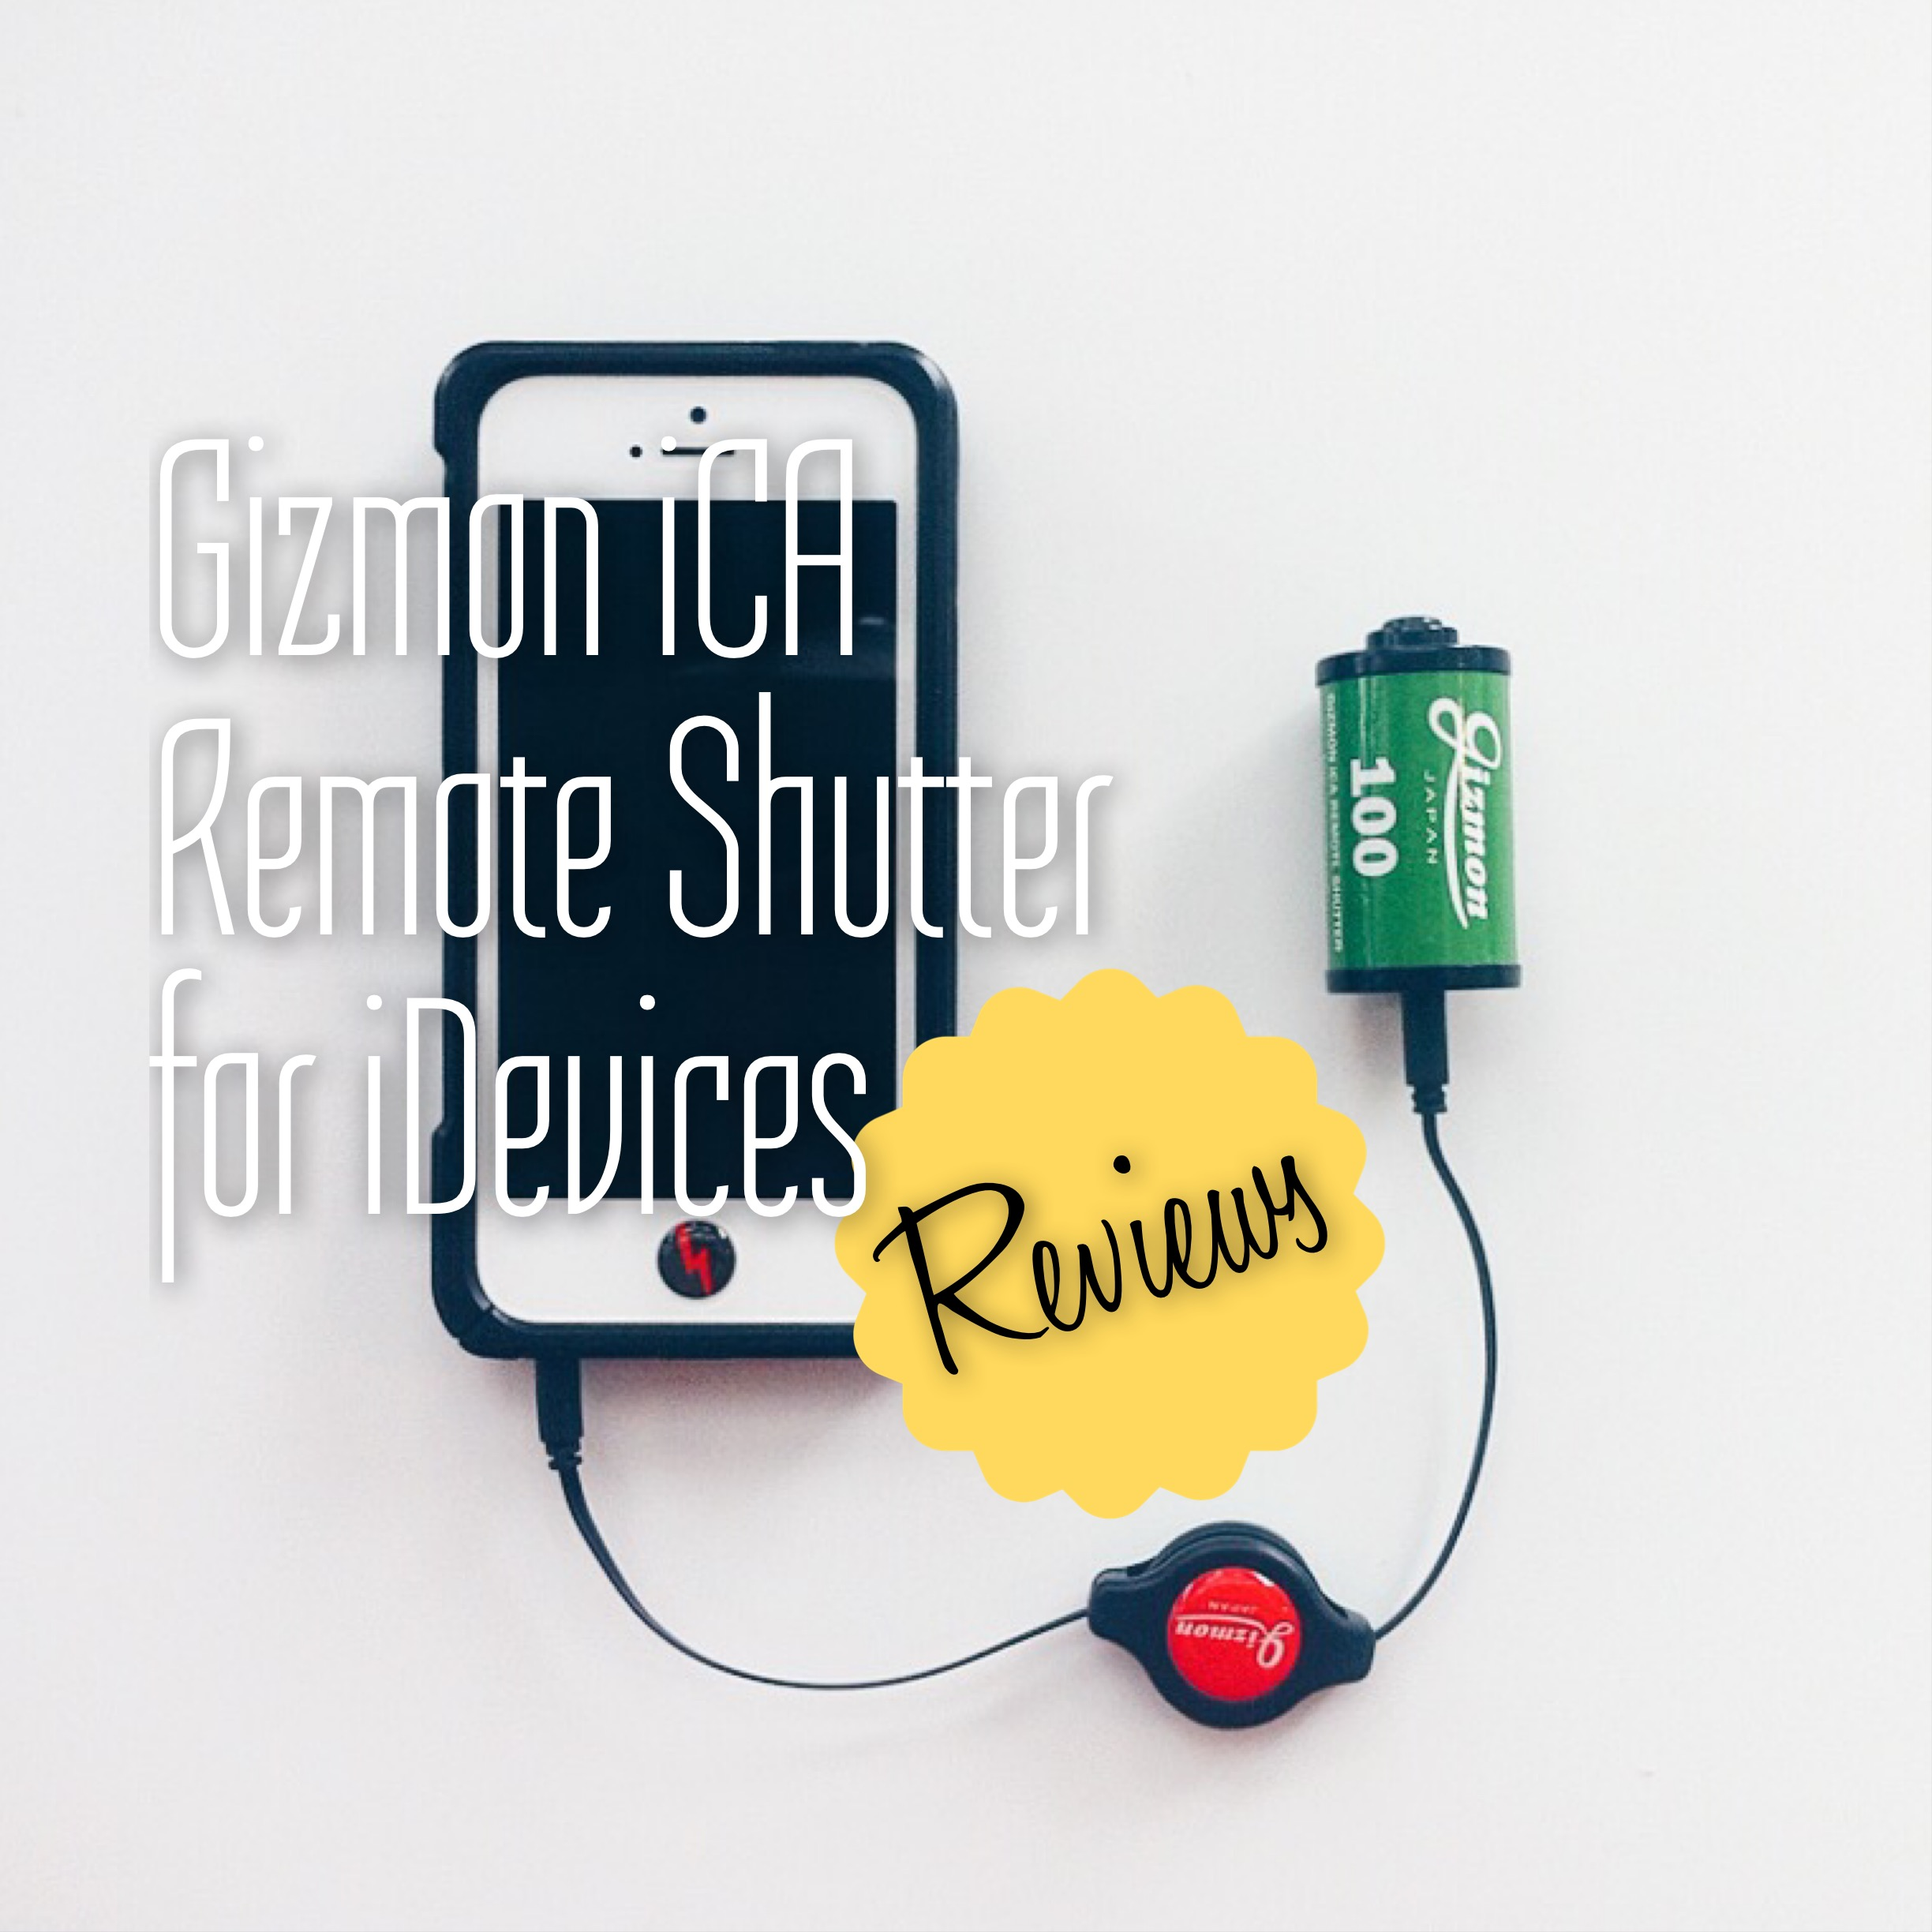 Gizmon iCA Remote Shutter Release for iDevices